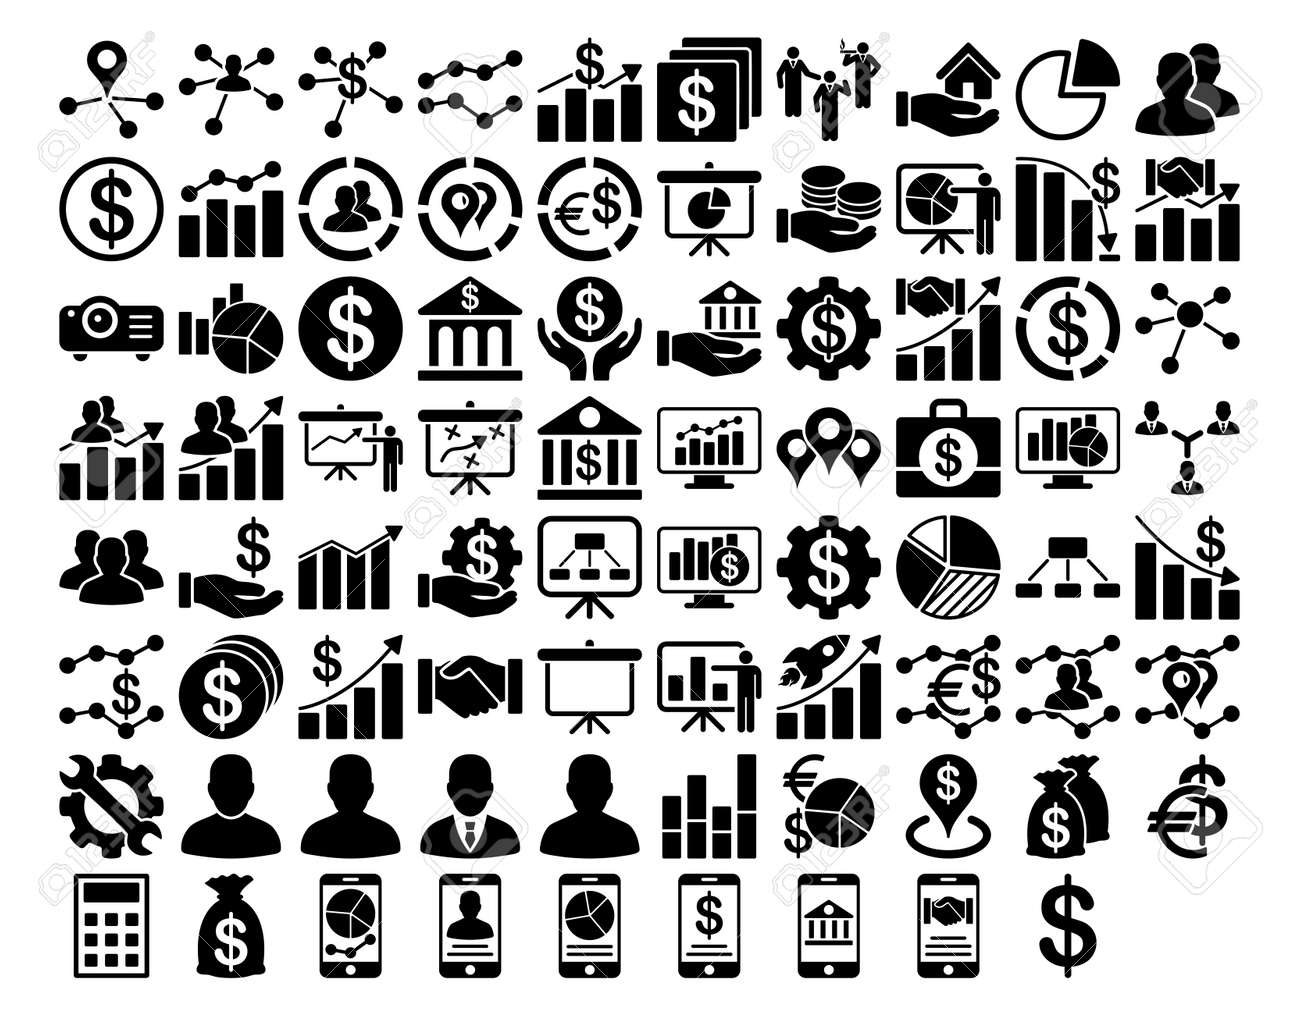 Business Icon Set. These flat icons use black color. Vector images are isolated on a white background. - 43532315